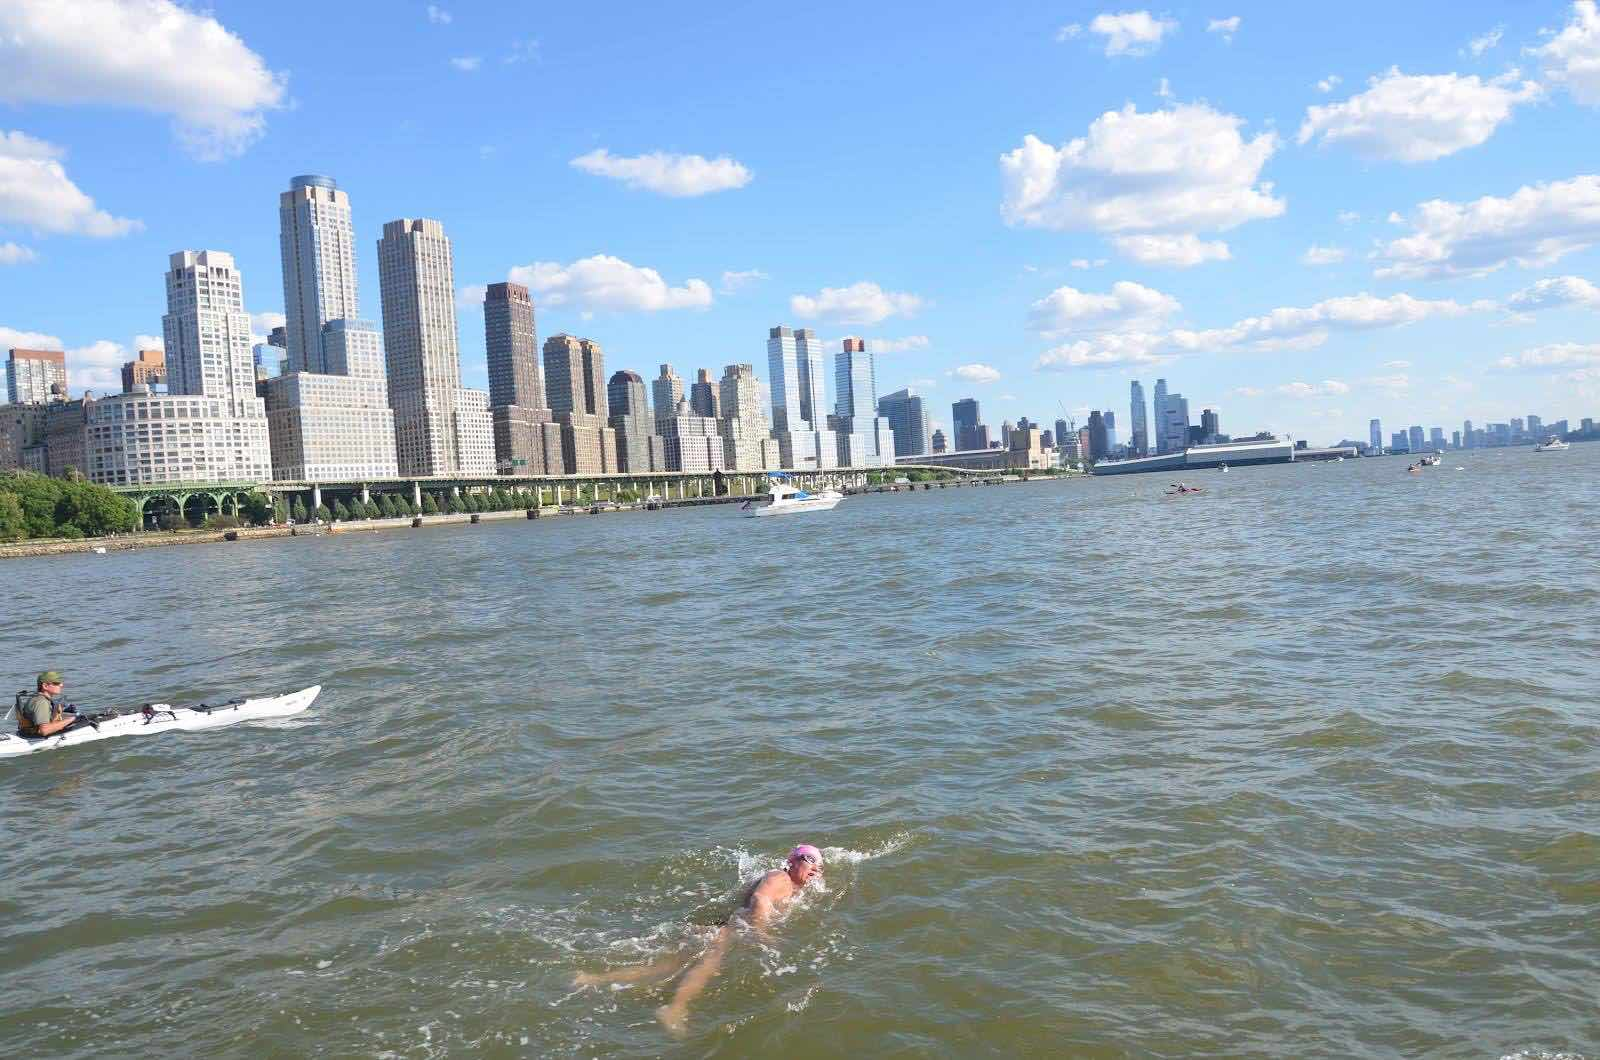 A swimmer takes in the Manhattan skyline (well every second breathe). Photo NYC Swim